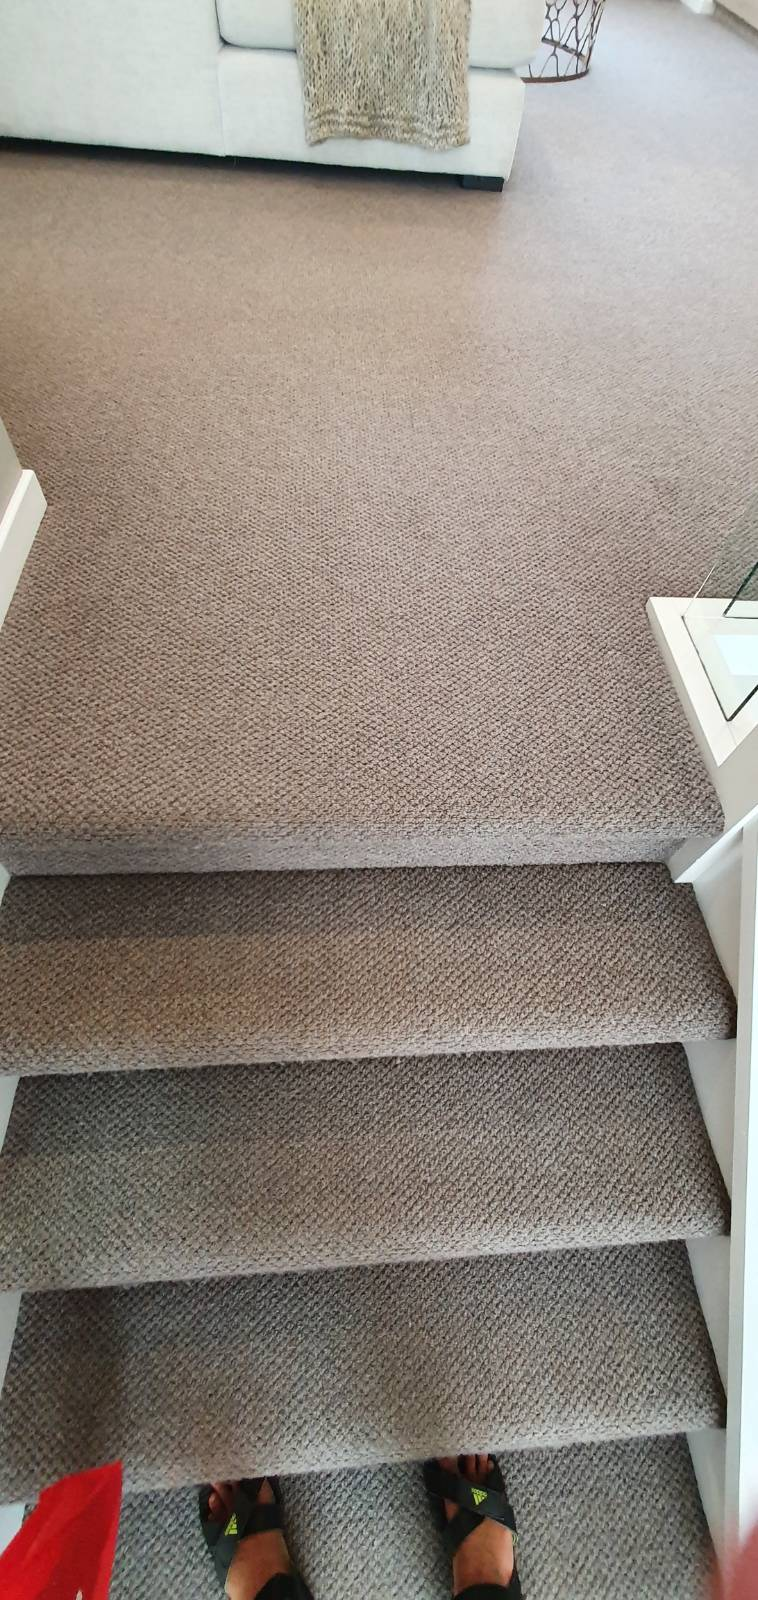 Can anyone tell what is the construction type of this carpet